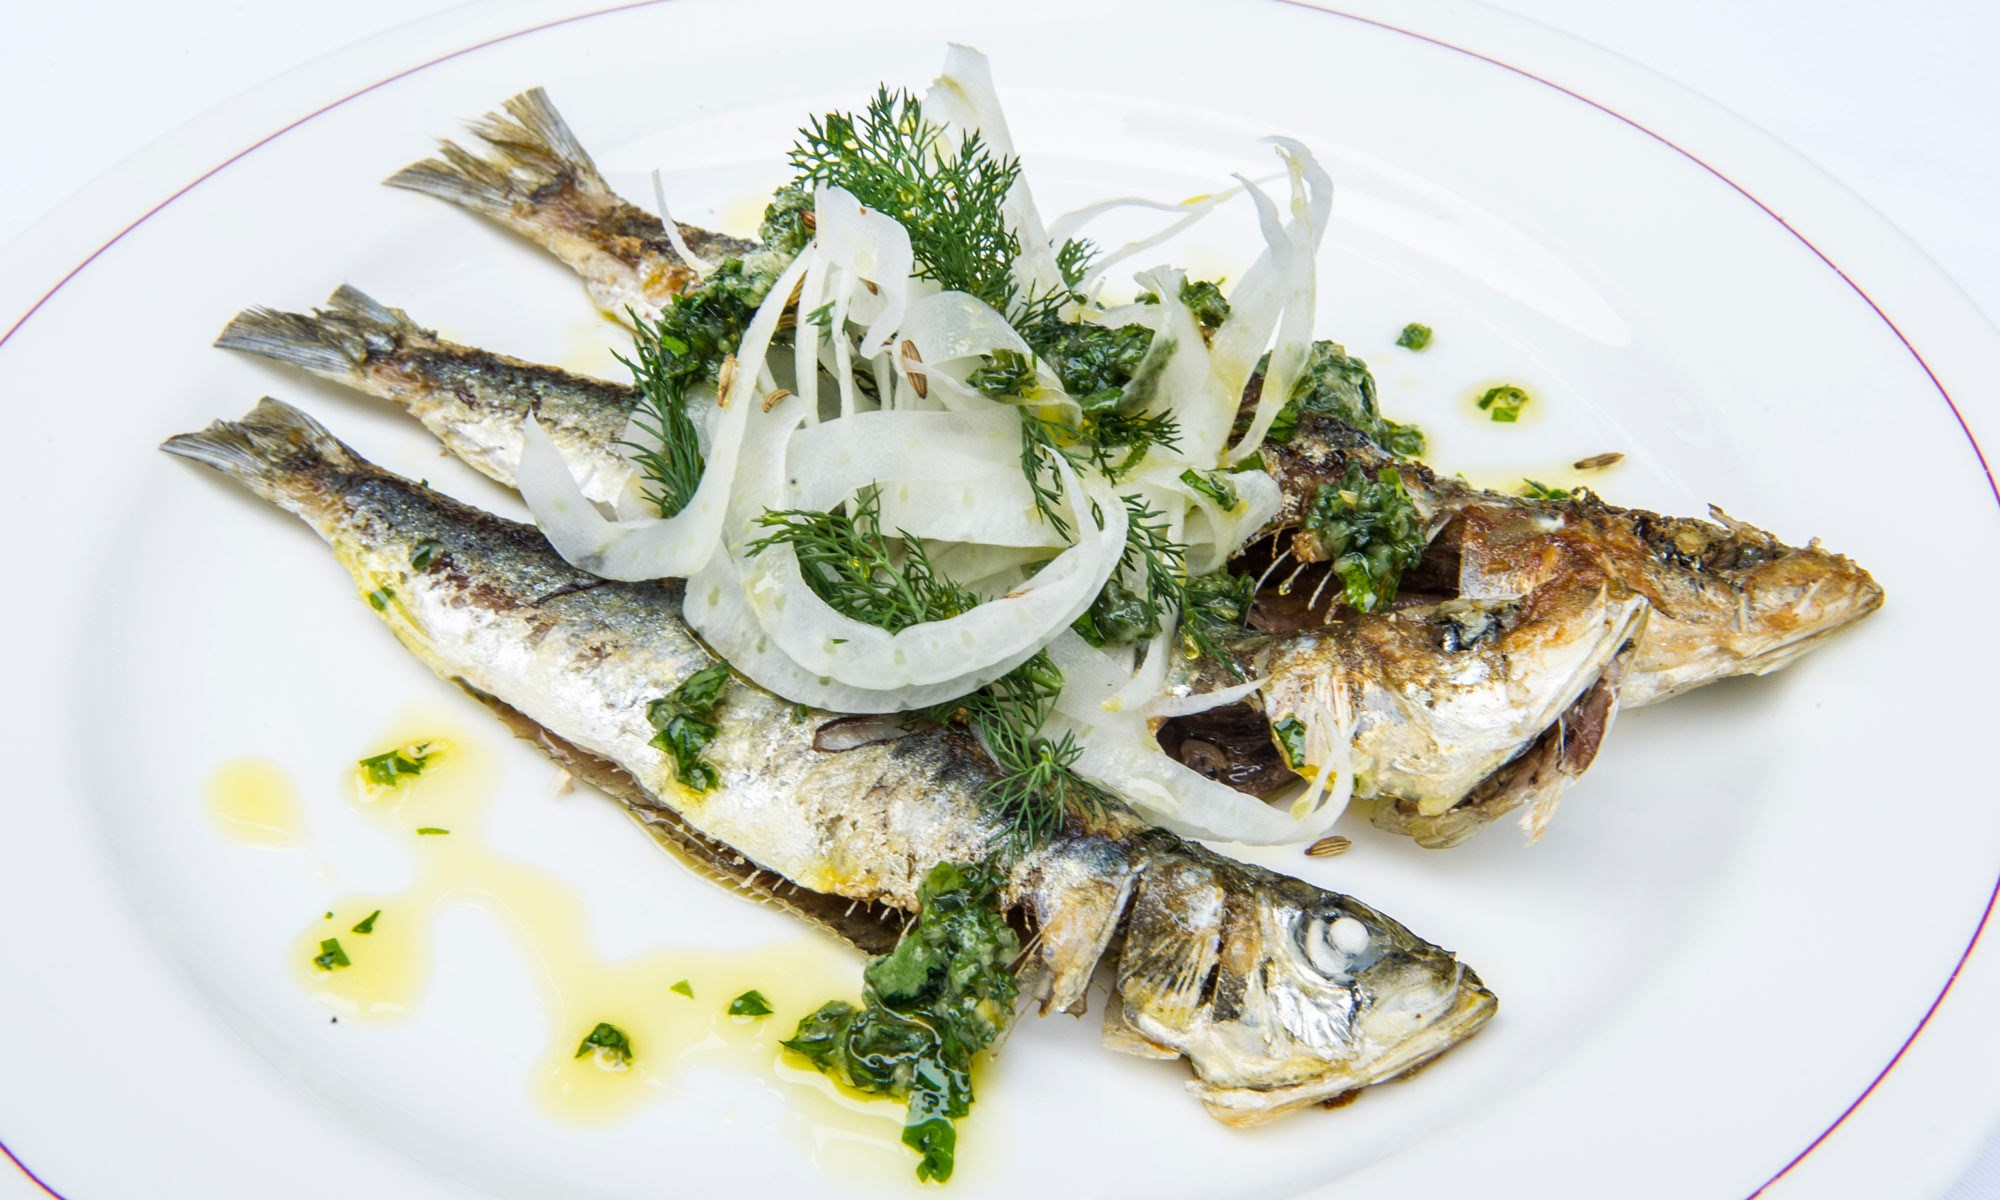 j sheekey griddled sardines w roasted garlic amalfi lemon fennel salad by sim canetty clarke